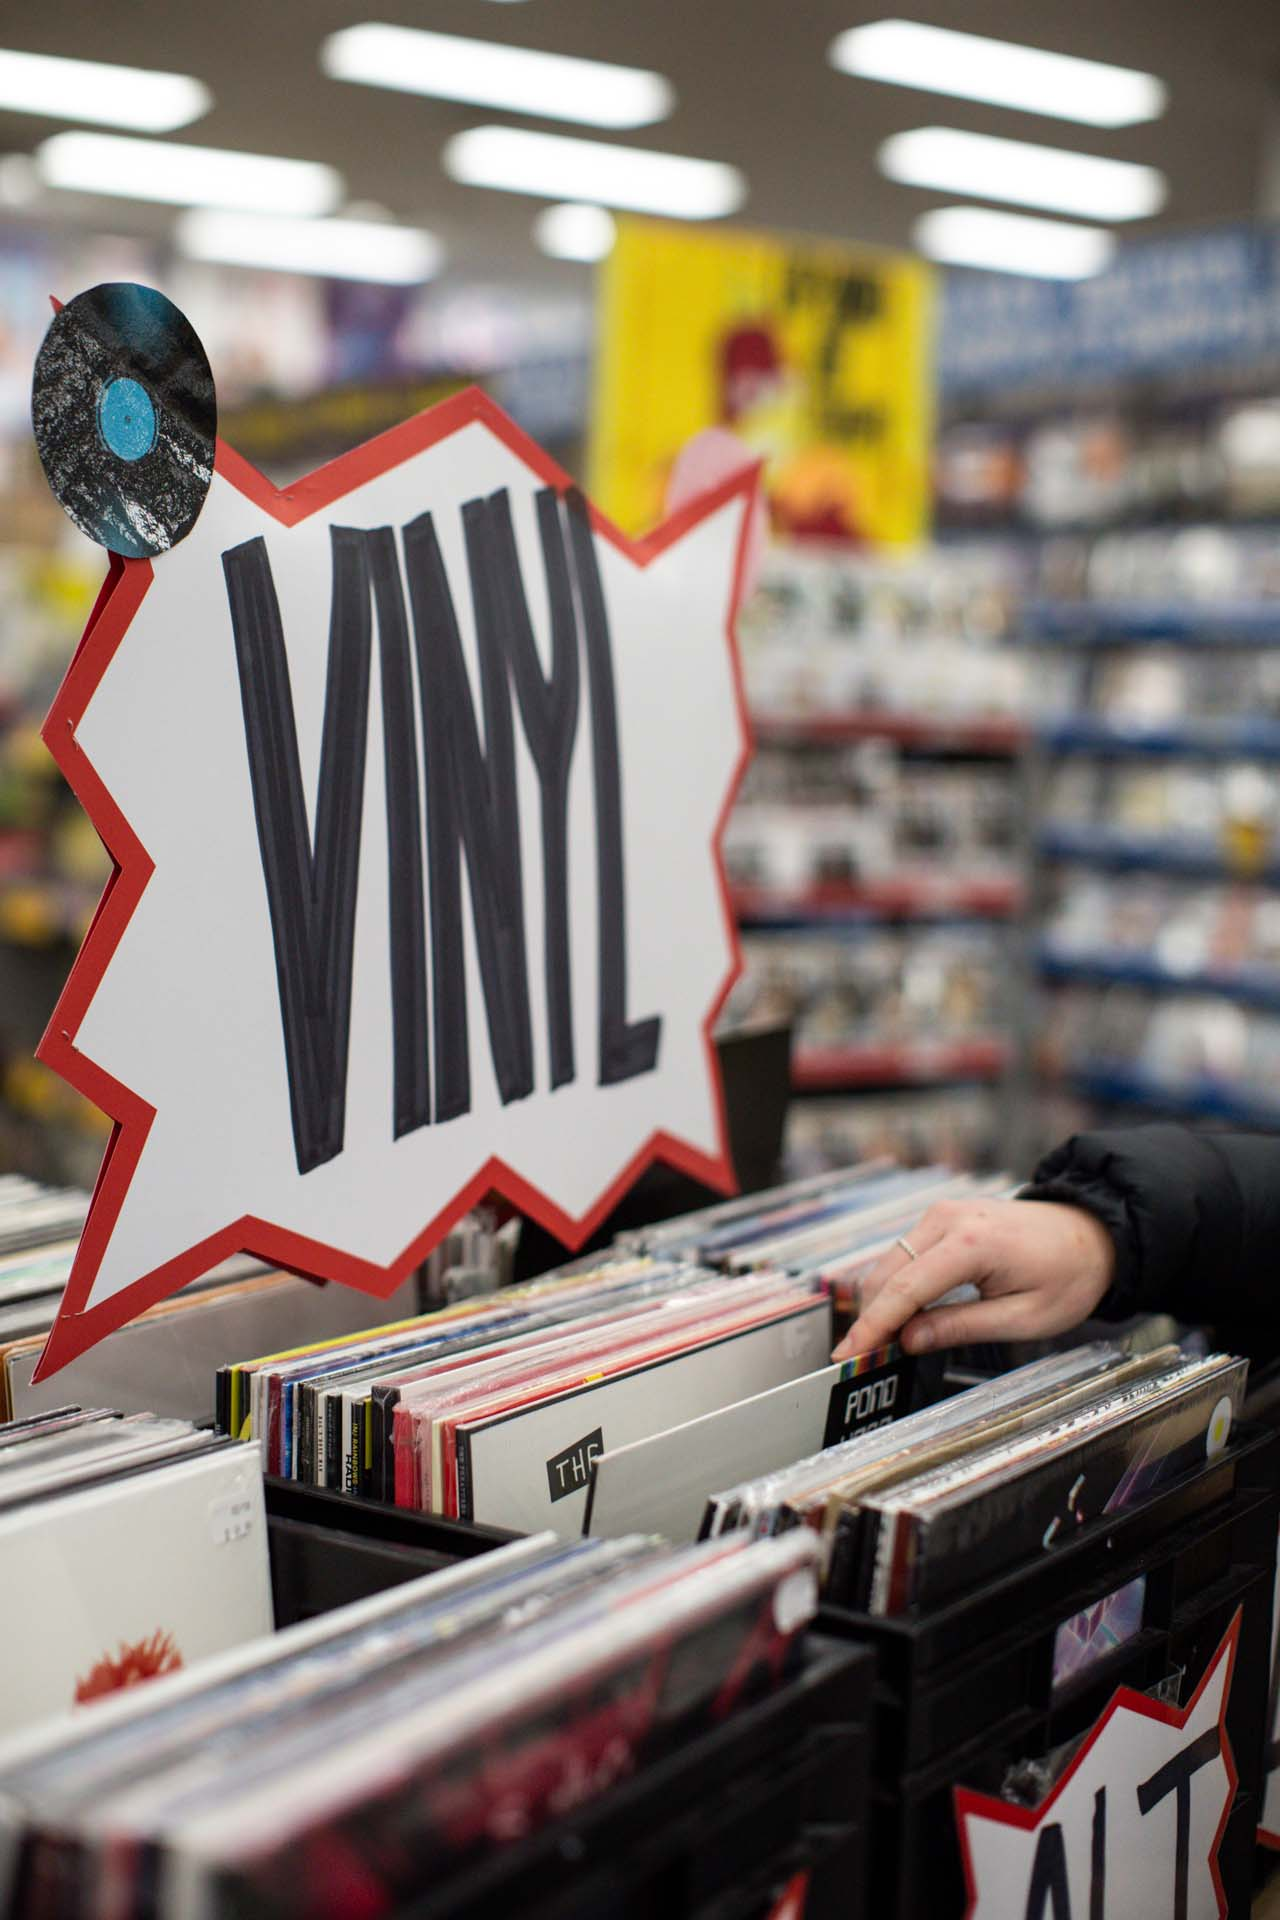 JB Hi Fi music vinyl shop